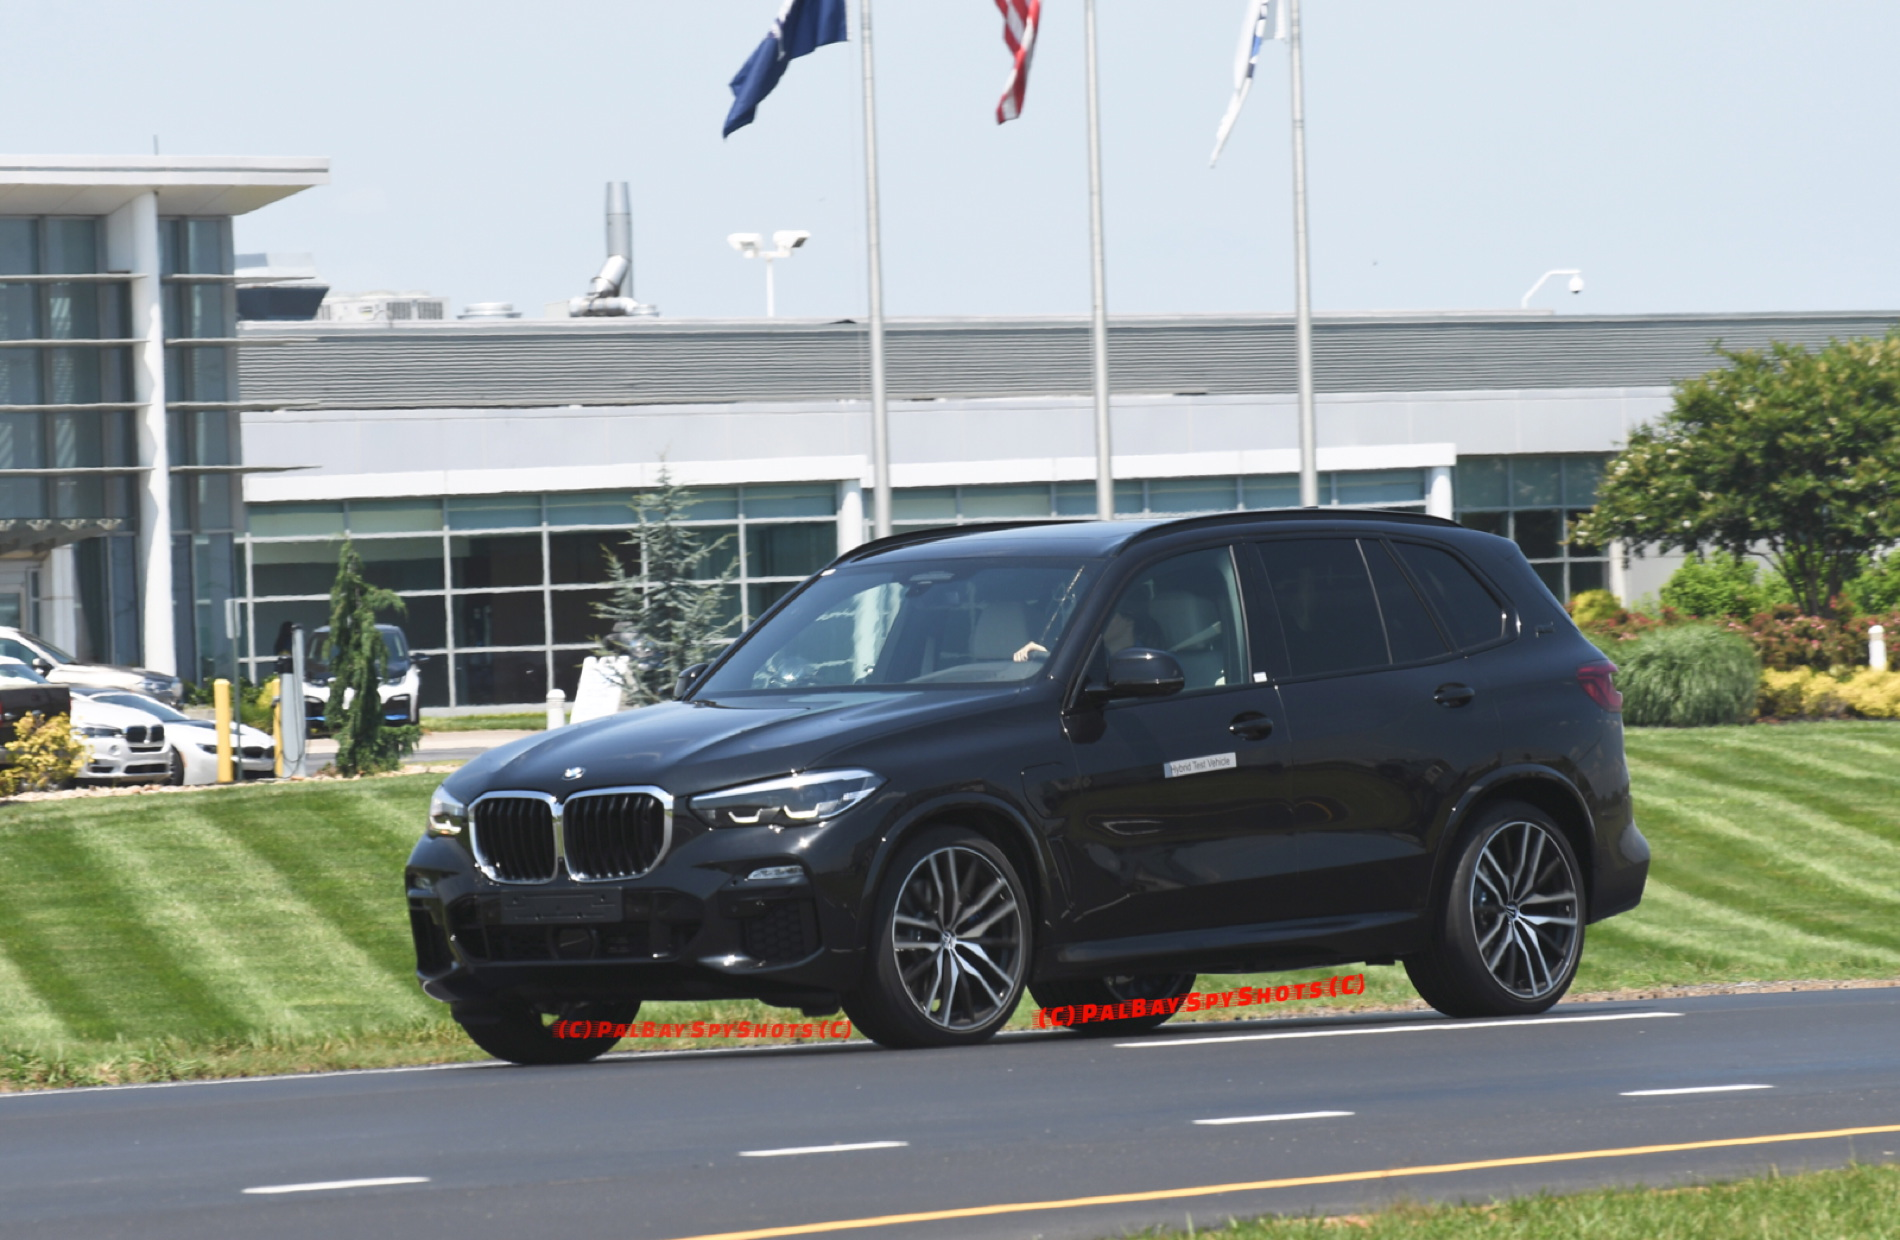 The Upcoming Bmw G05 X5 Xdrive45e Hybrid Spotted On The Road